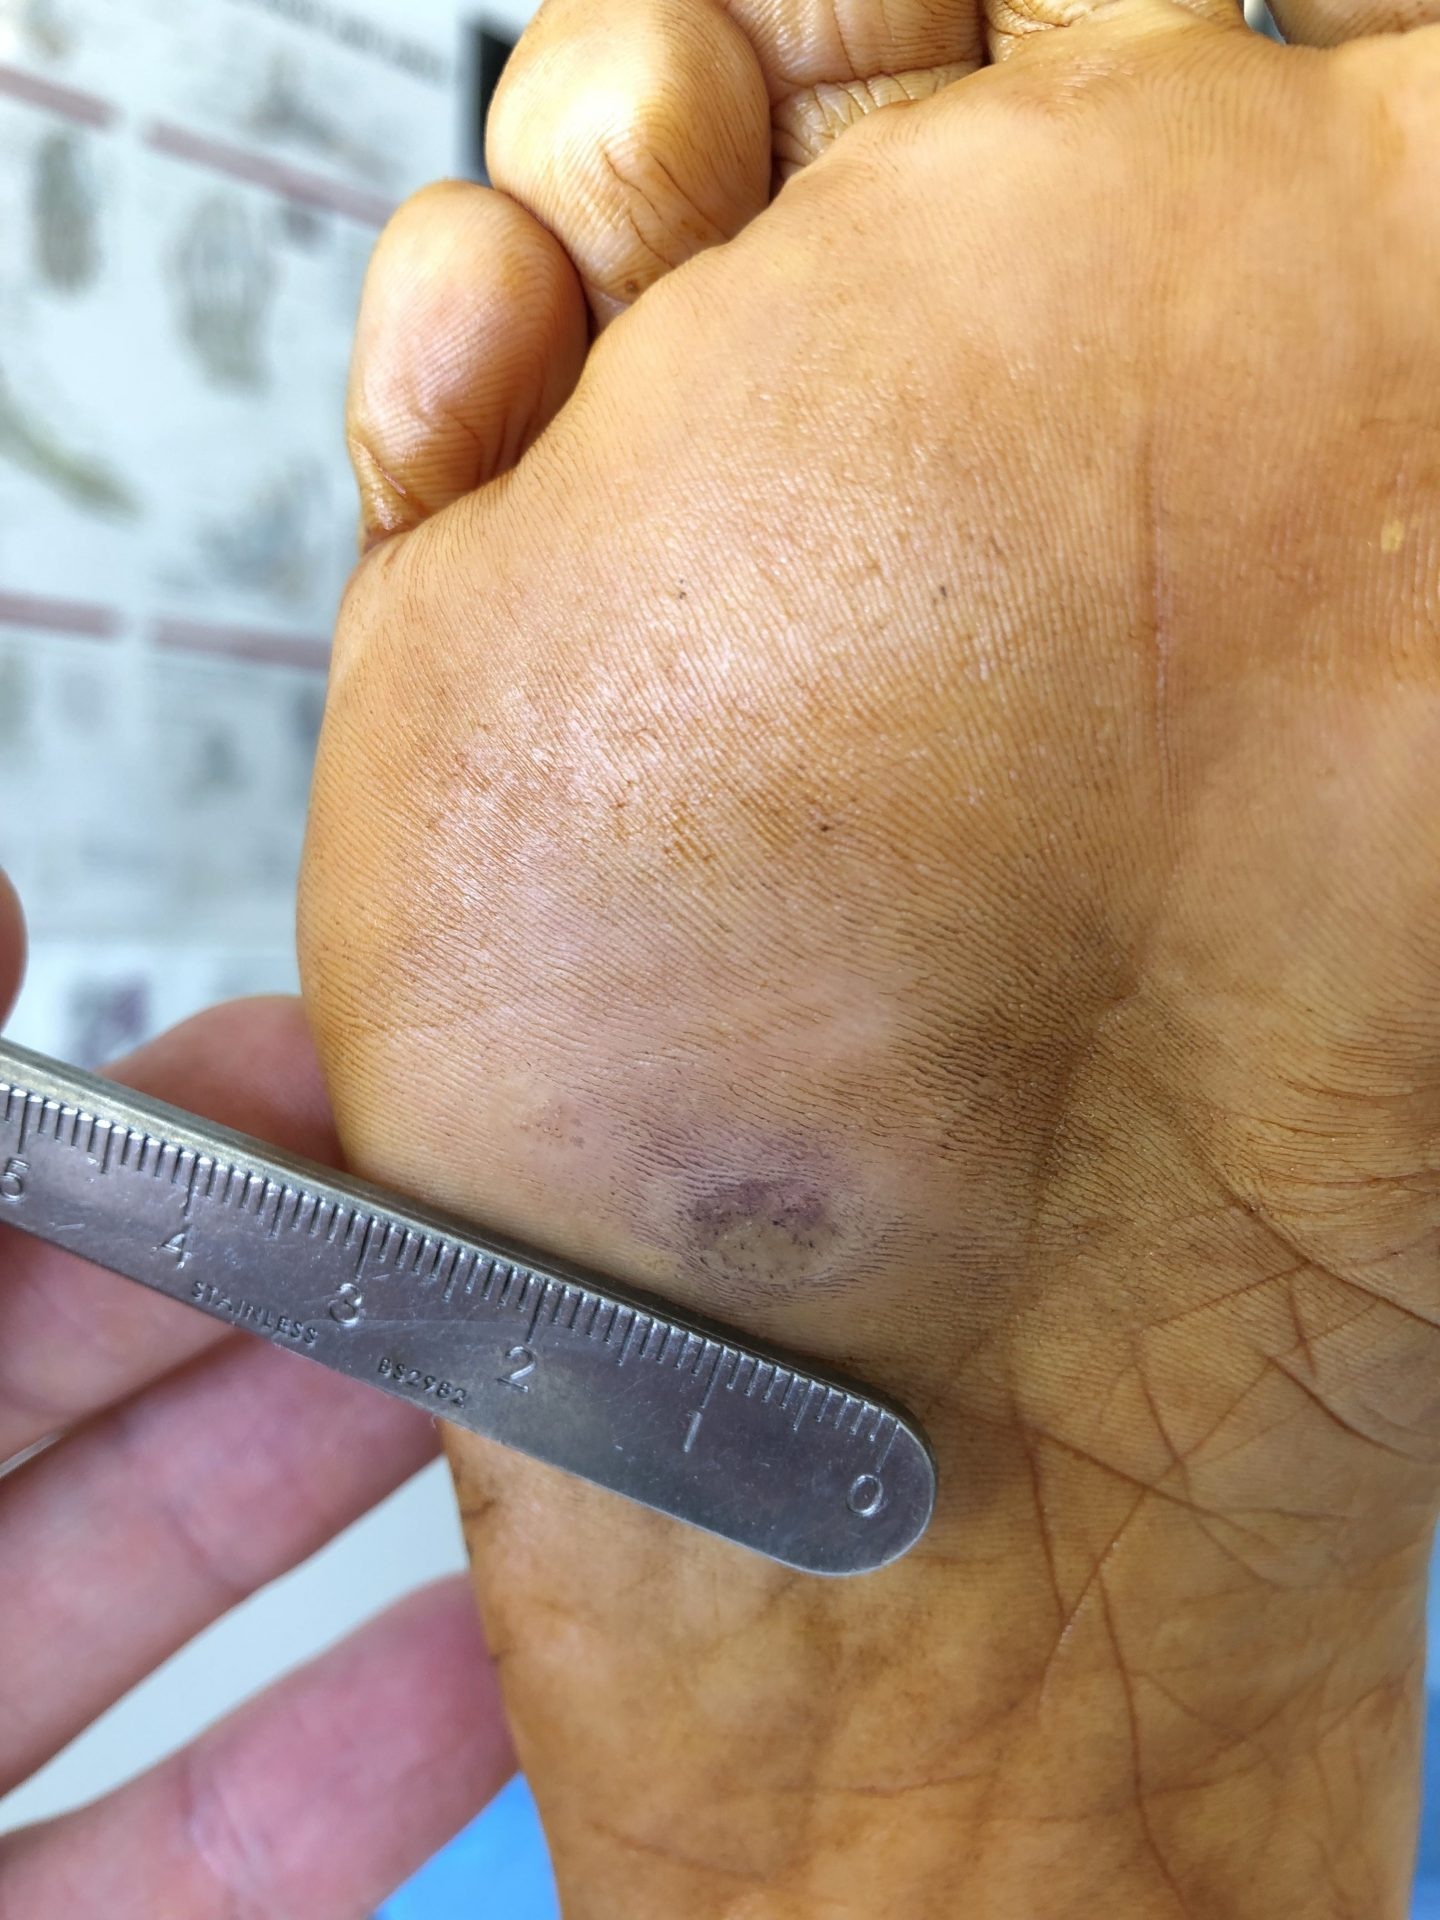 Plantar Warts Verrucae How To Finally Get Rid Of Those Painful Lumps On The Bottom Of Your Feet